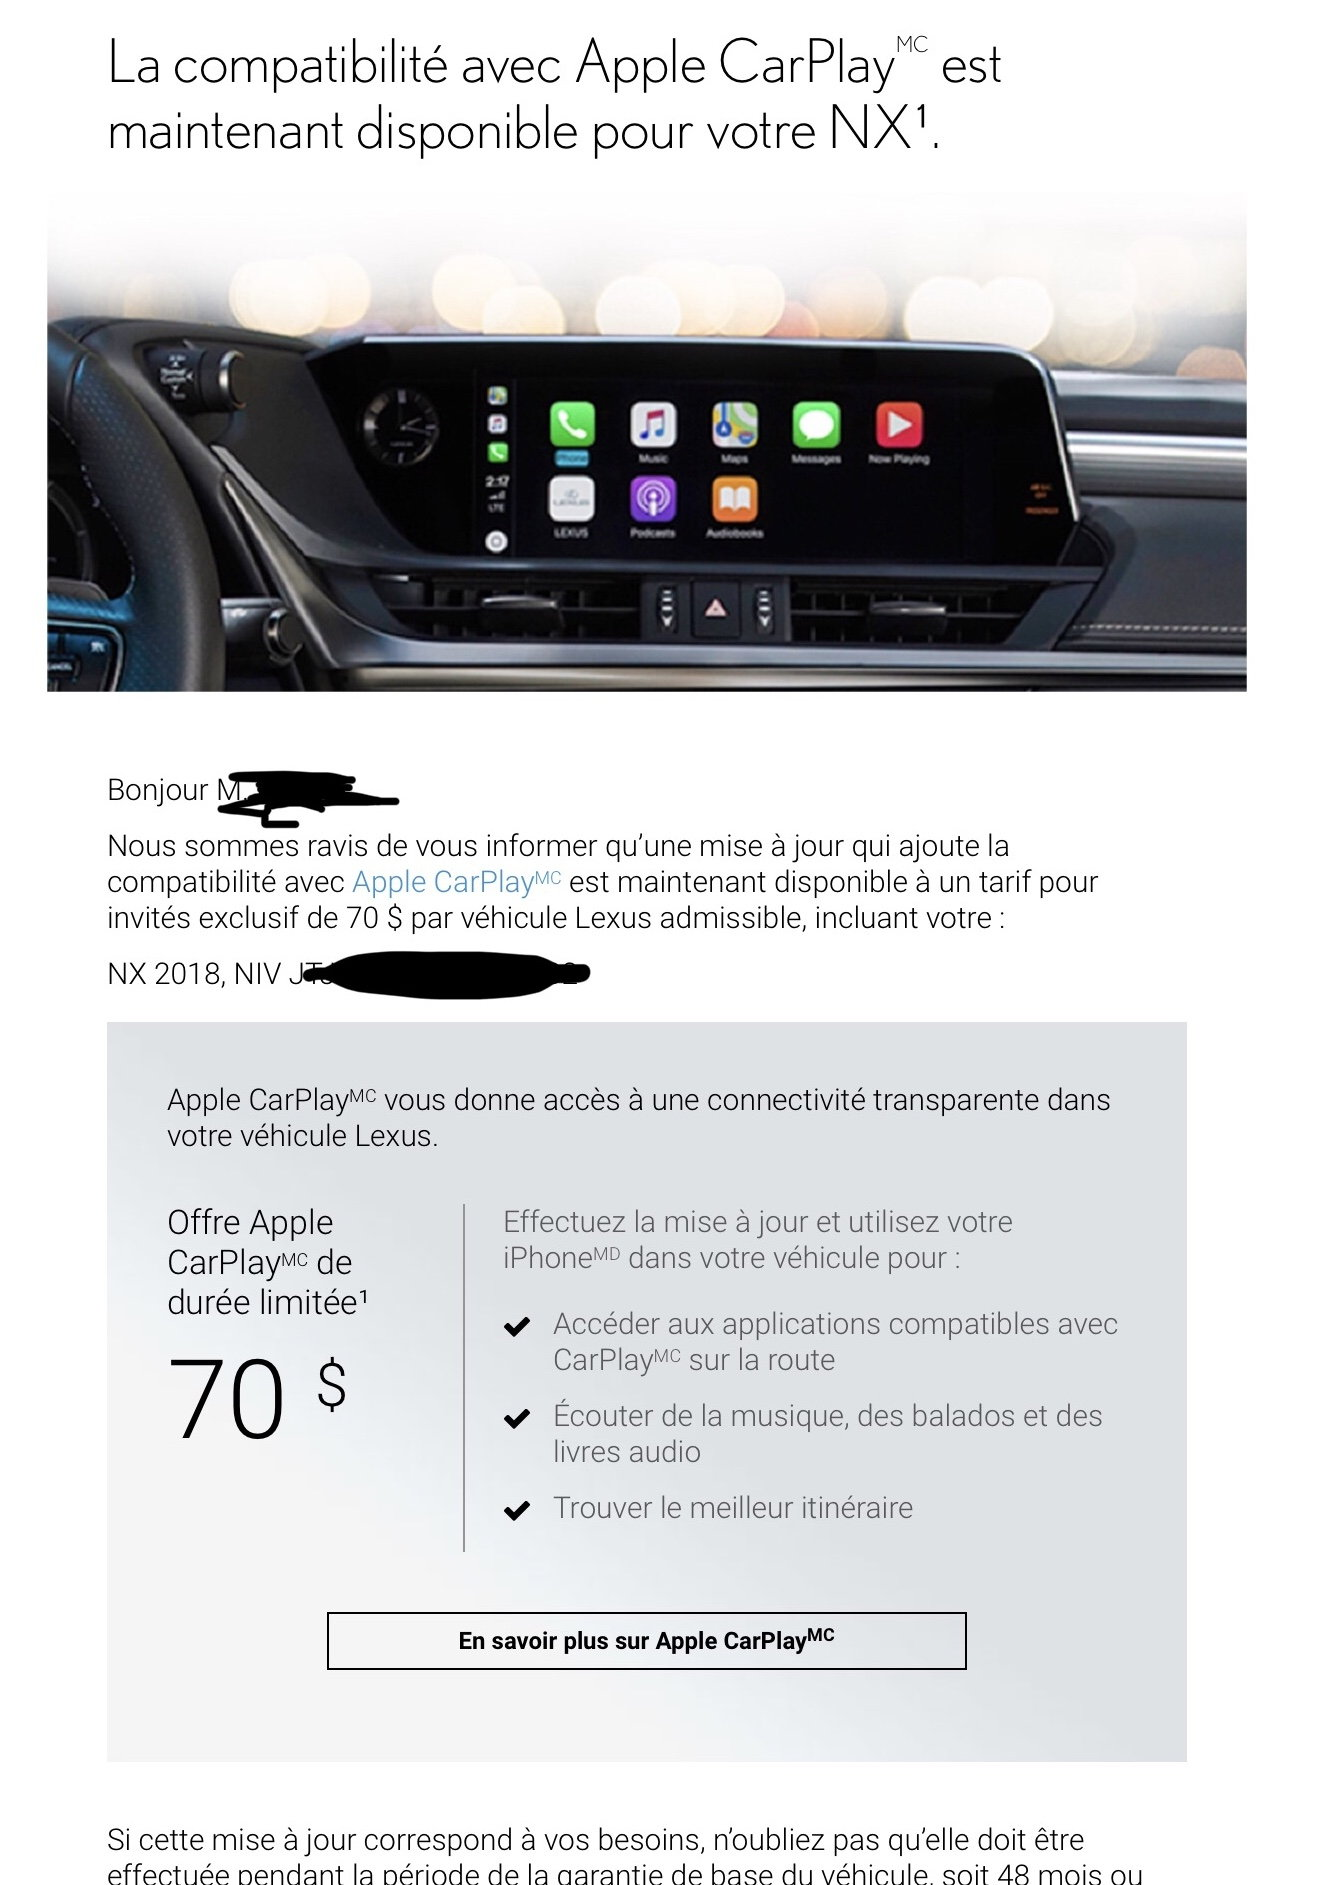 Lexus Enform 2 0 to update with Apple CarPlay - Page 20